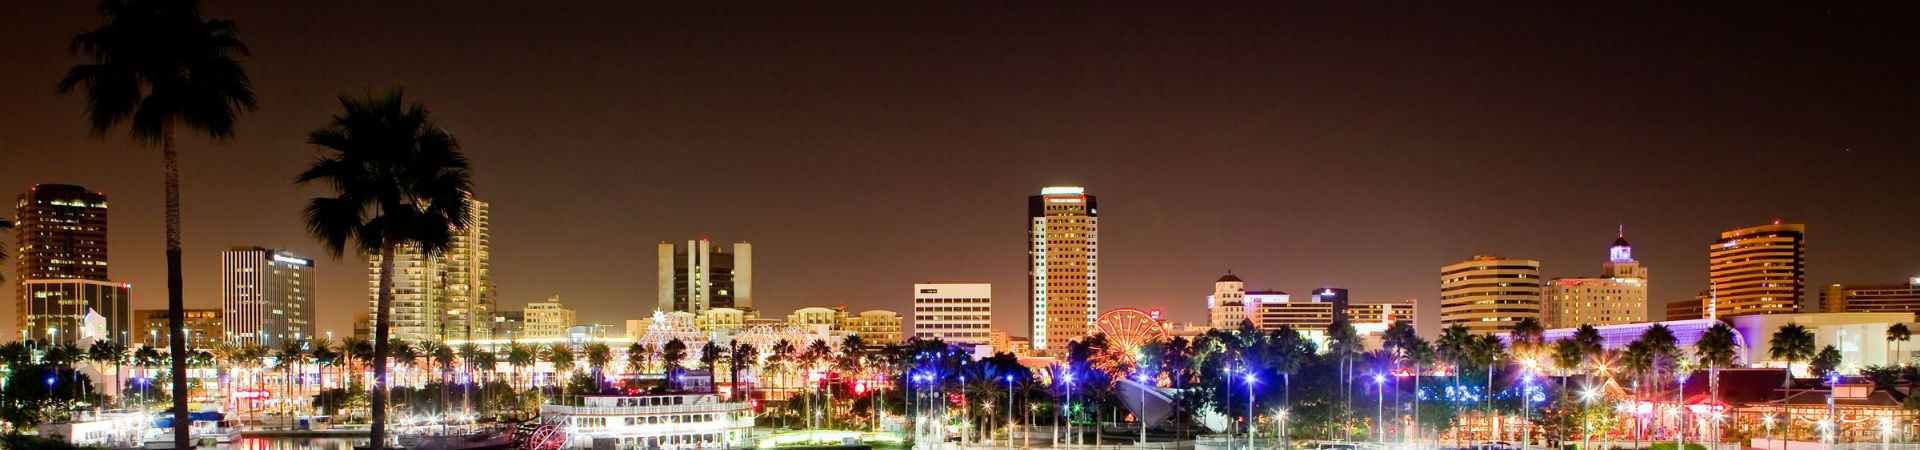 long-beach-night-city-scape